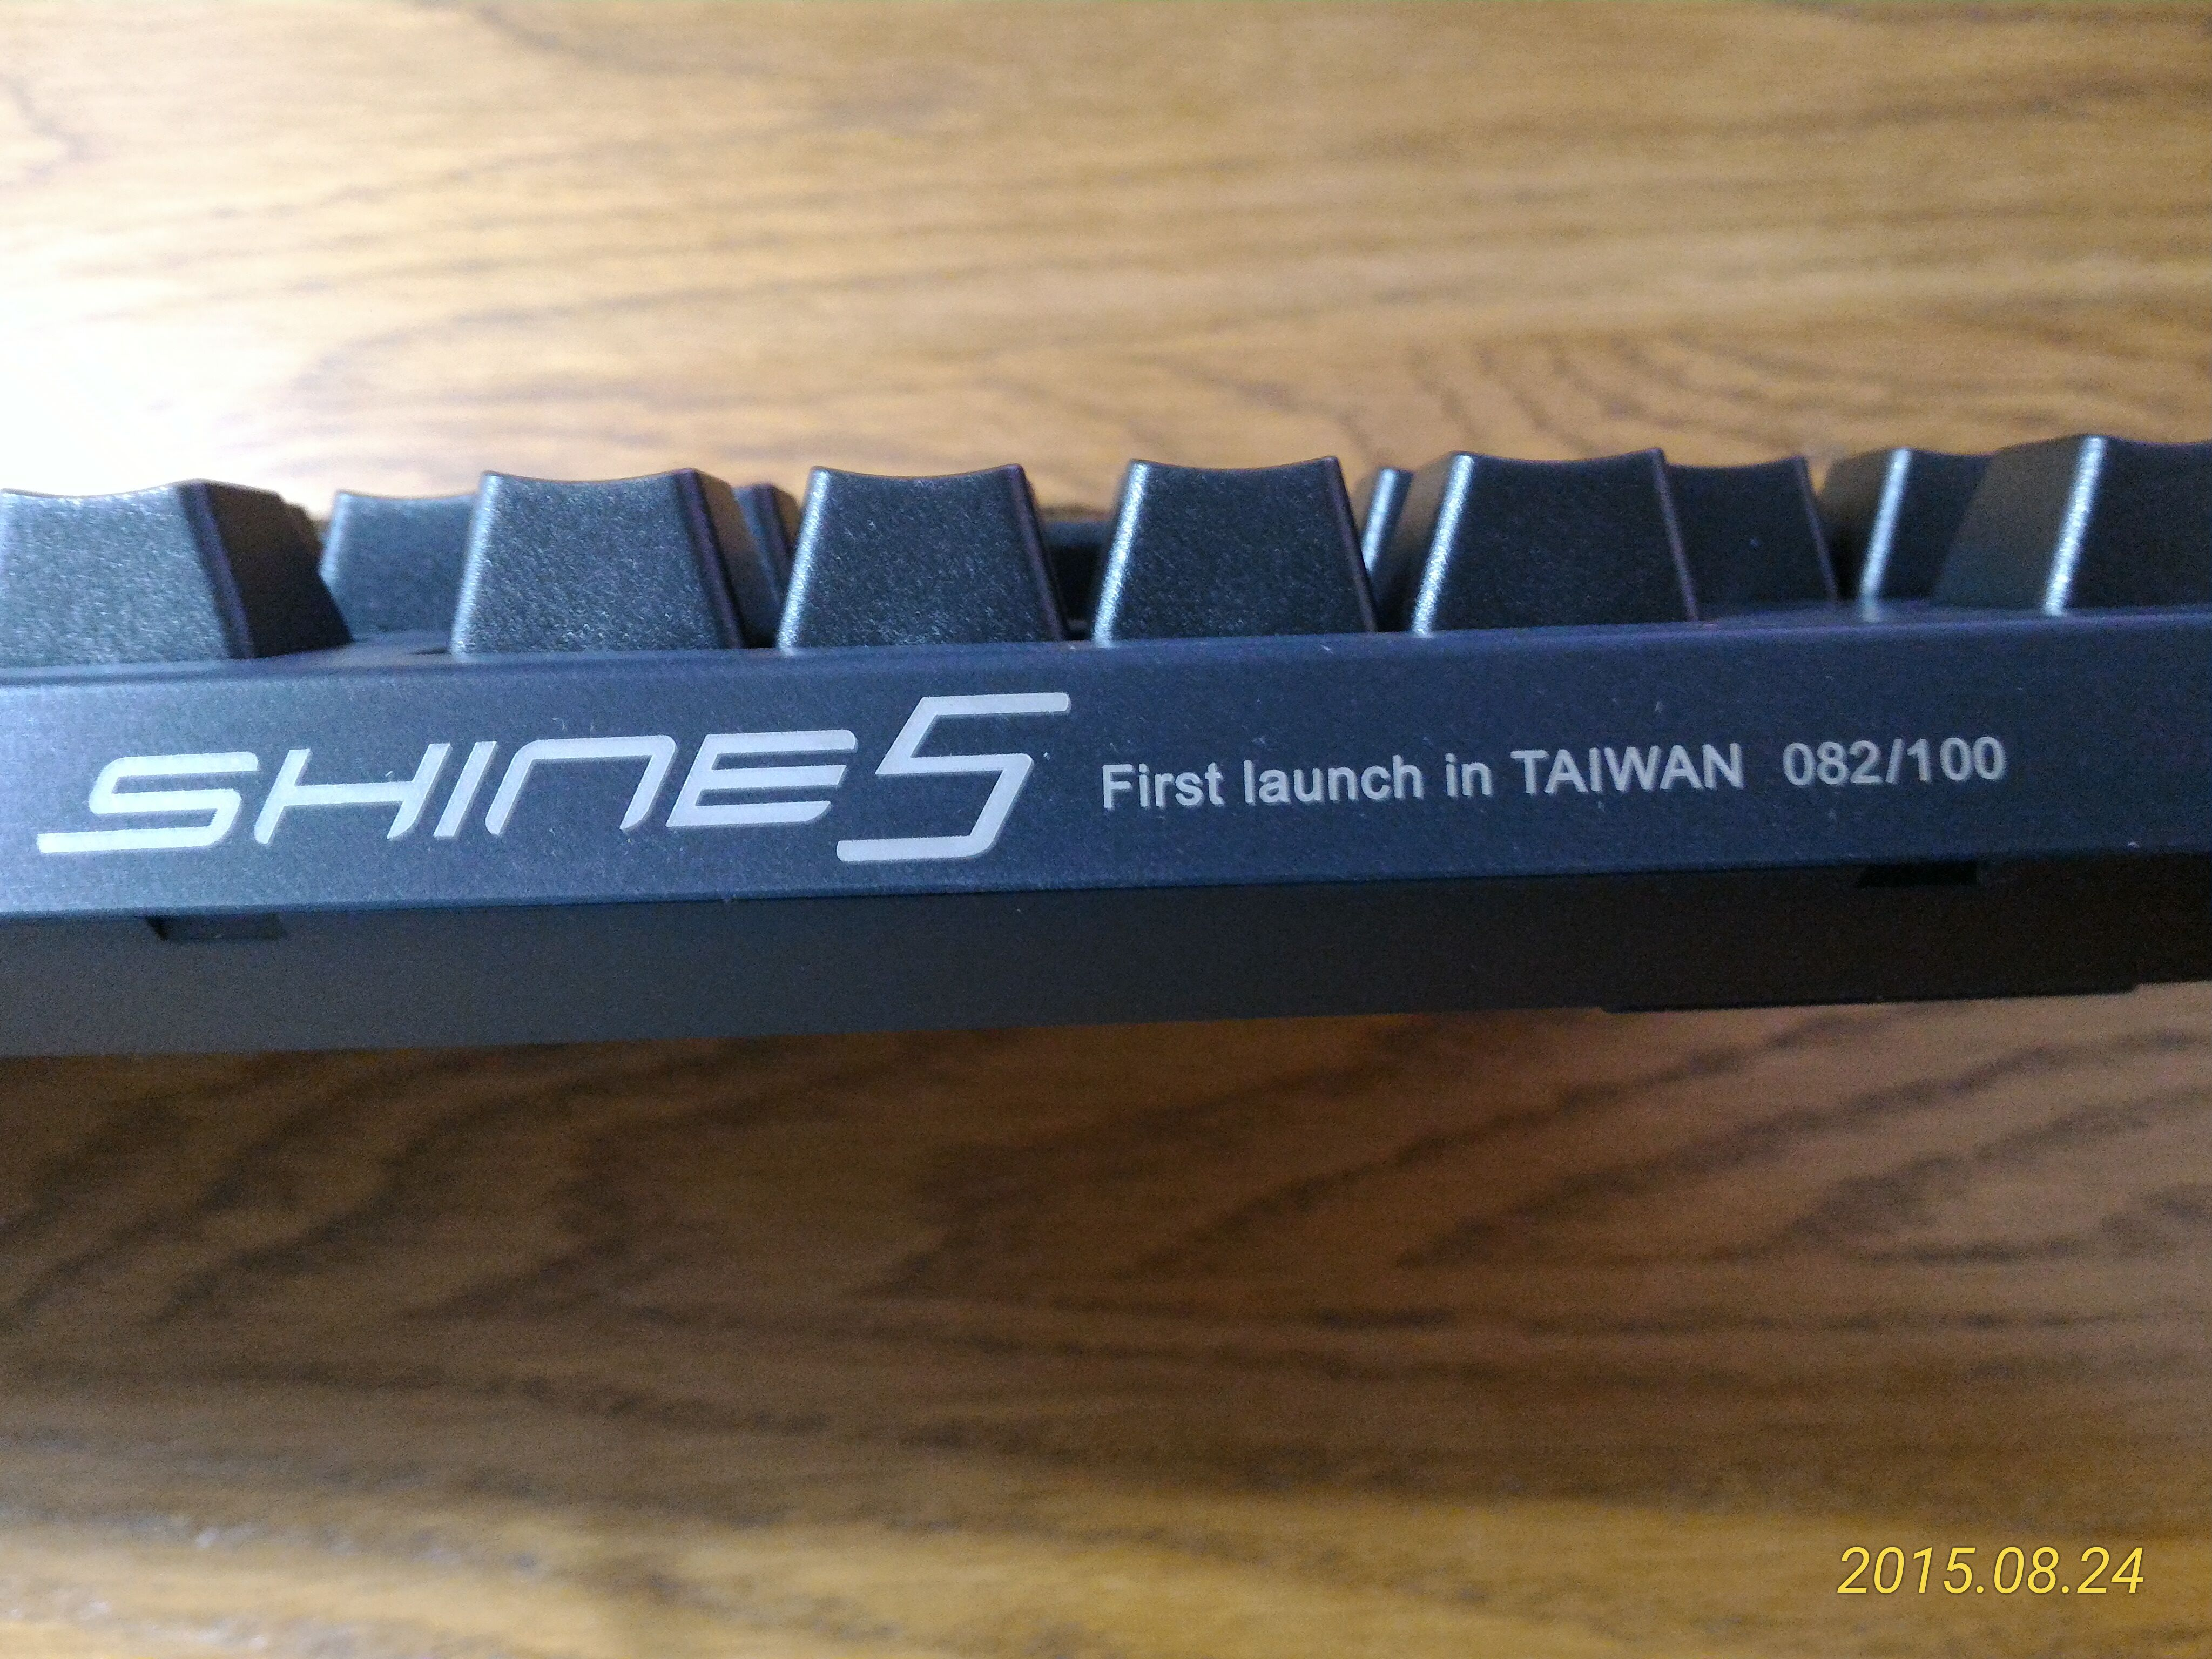 Shine 5 First launch in Taiwan 082/100